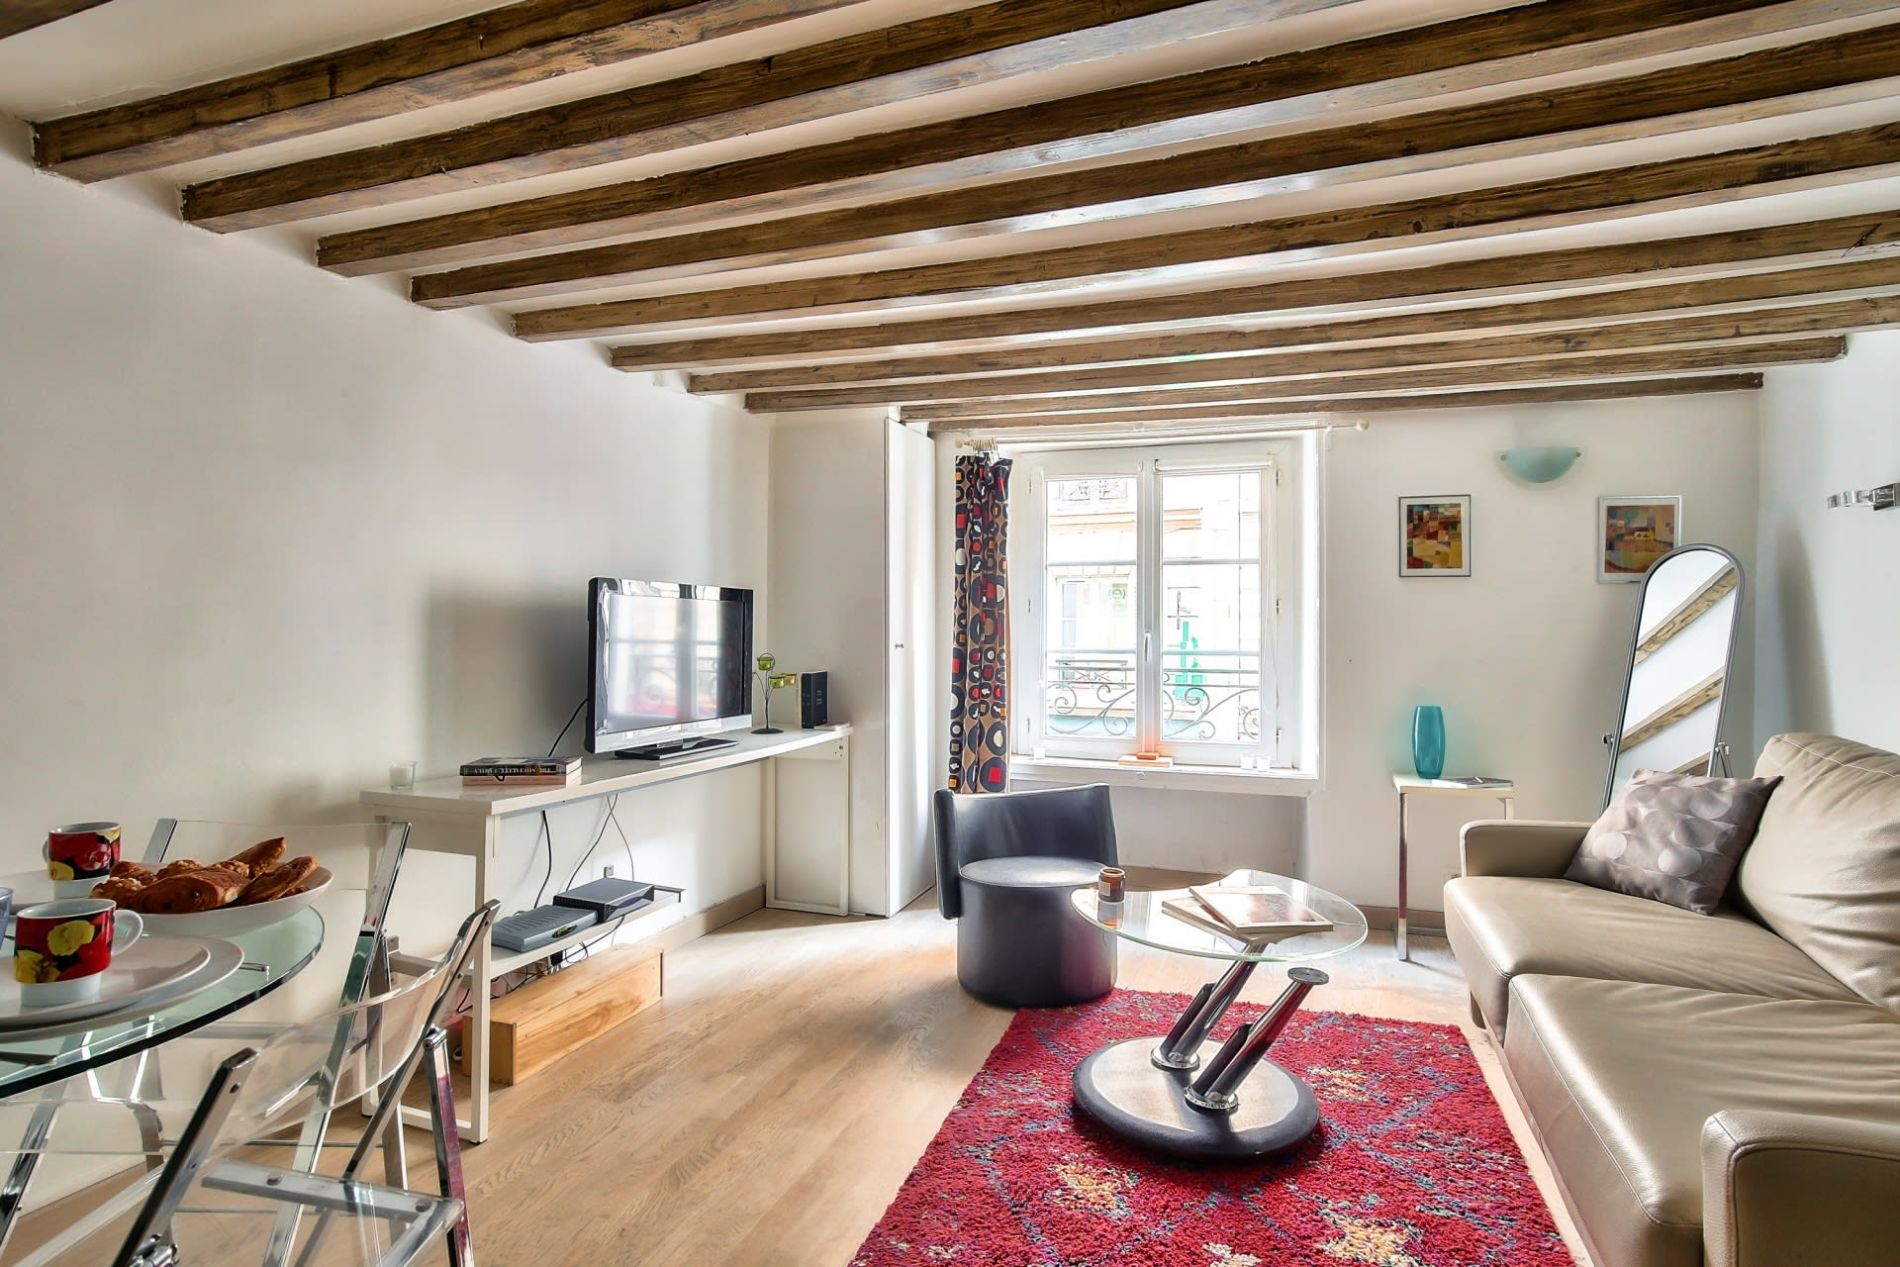 Serviced accommodation that allows pets in the Marais district of Paris